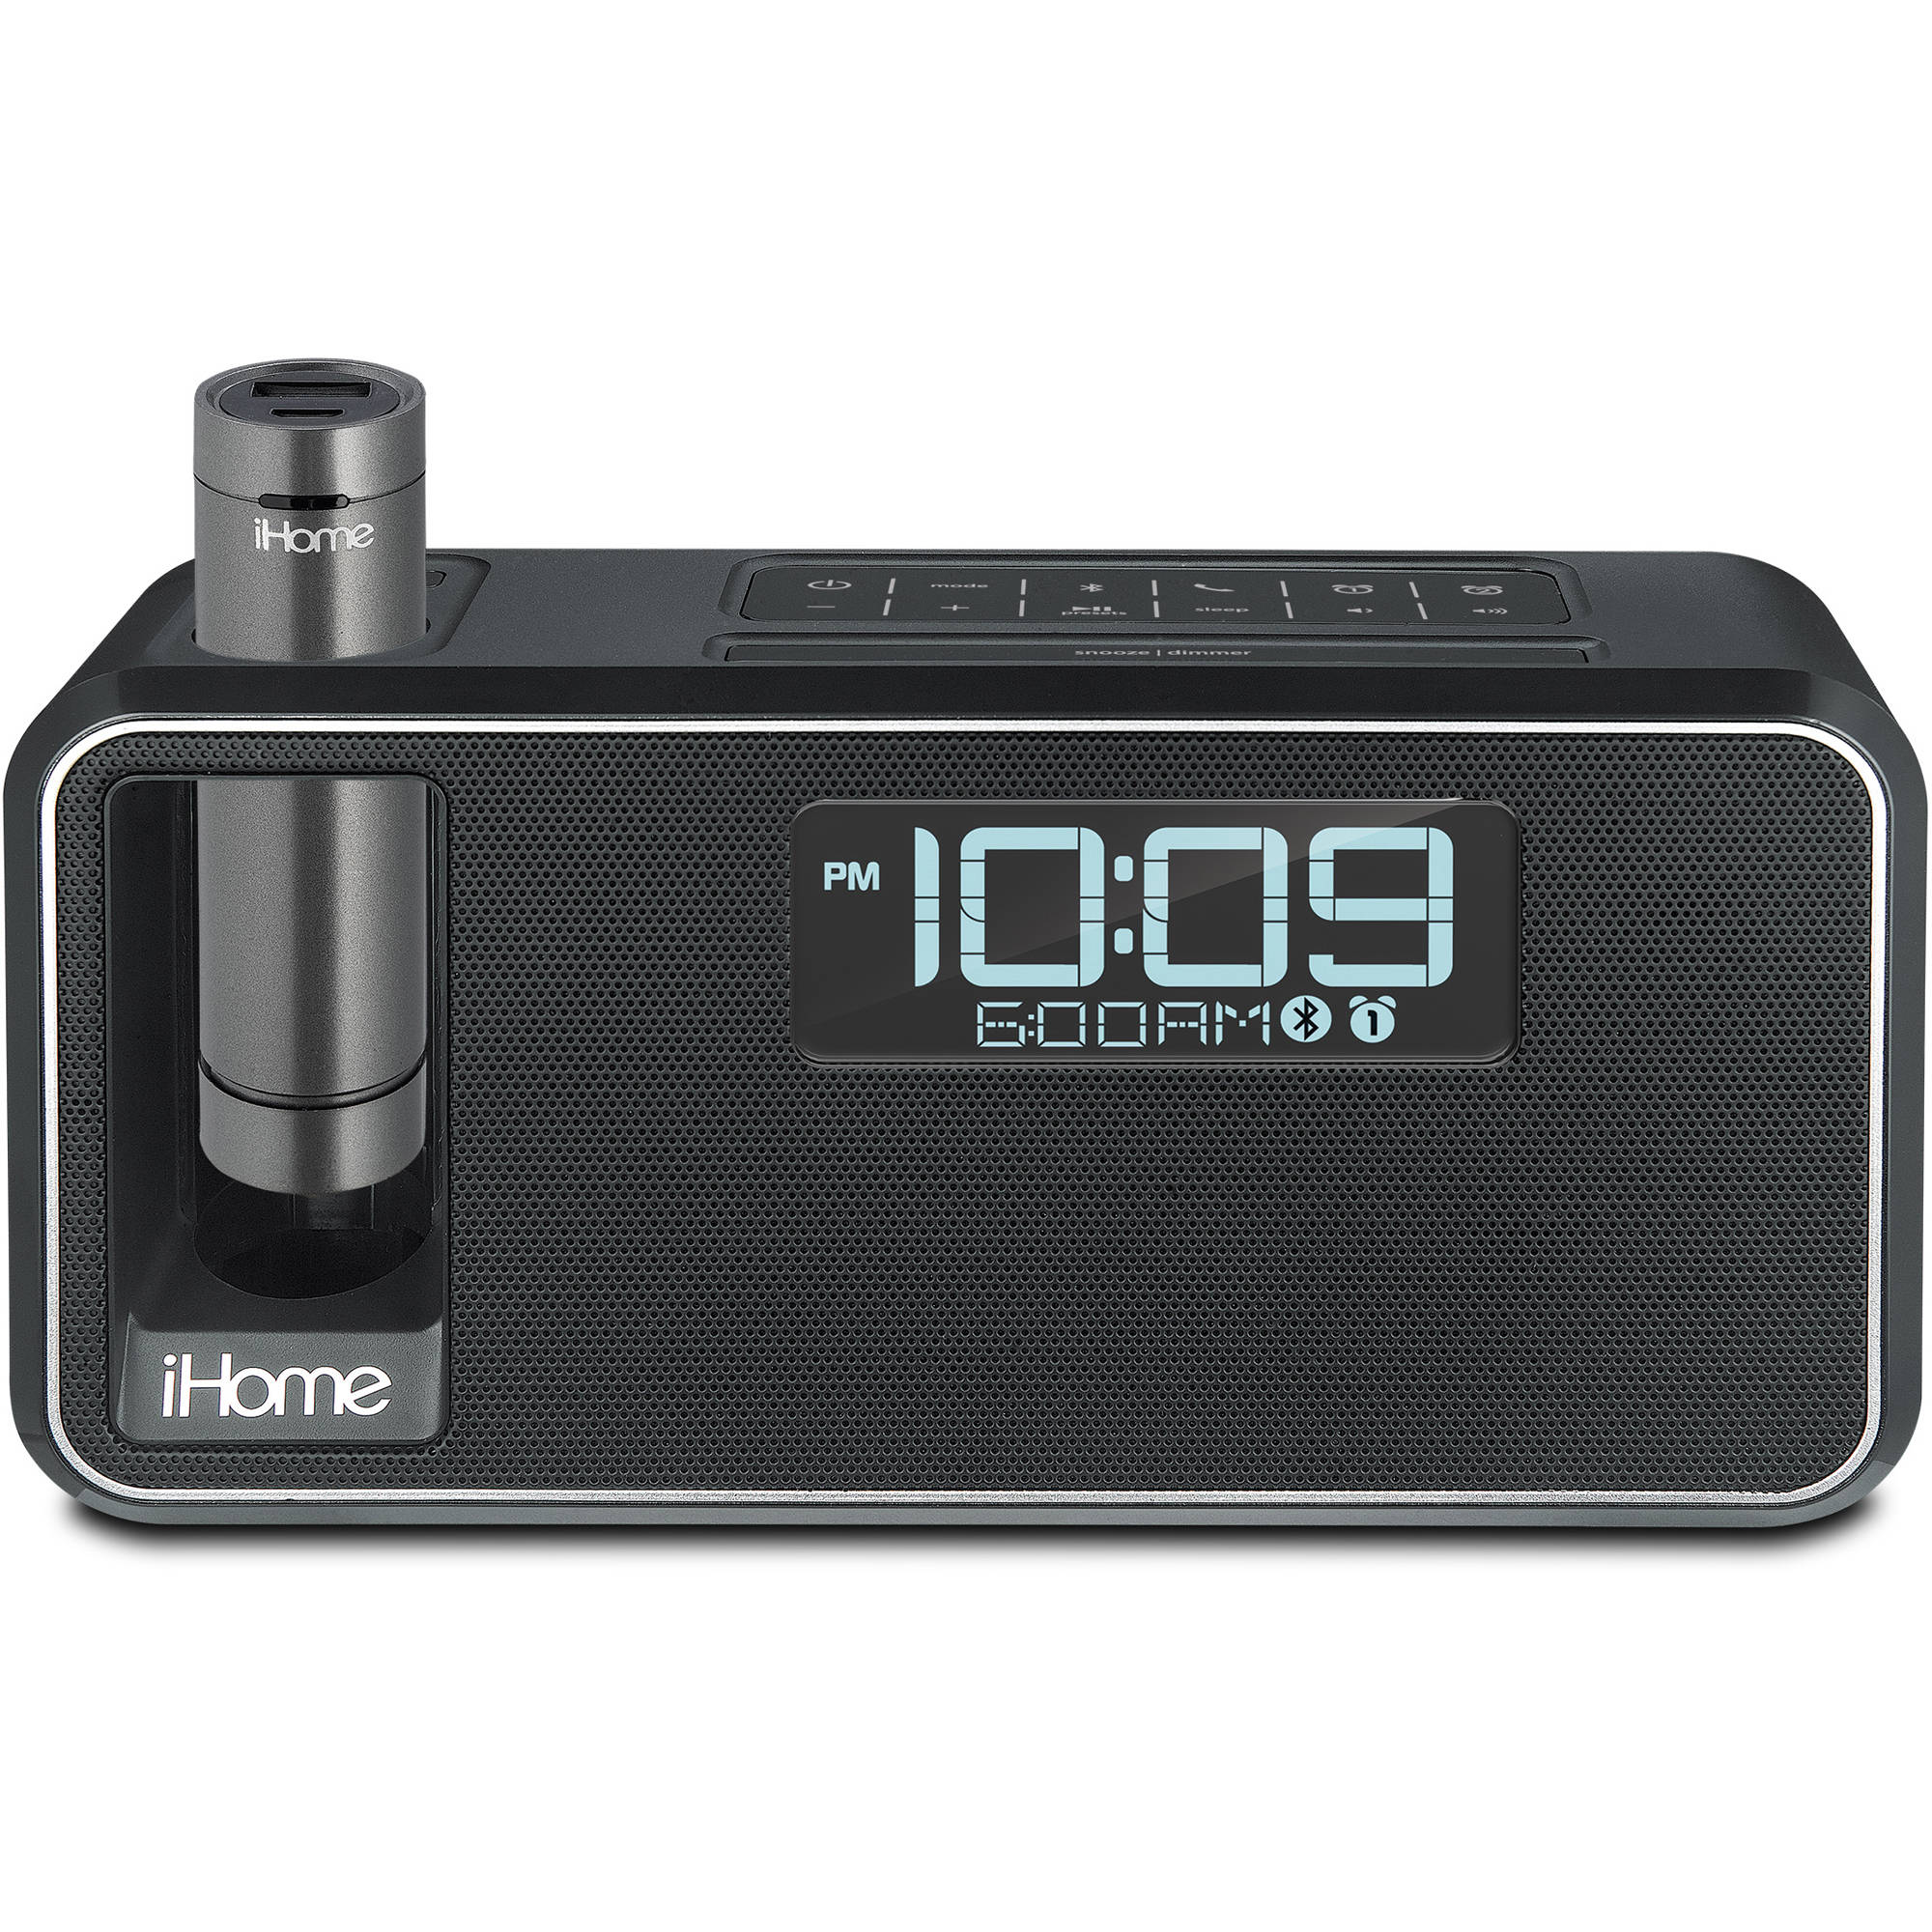 iHome iKN105 Kineta K2 Stereo Alarm Clock with K-CELL Portable Battery Pack